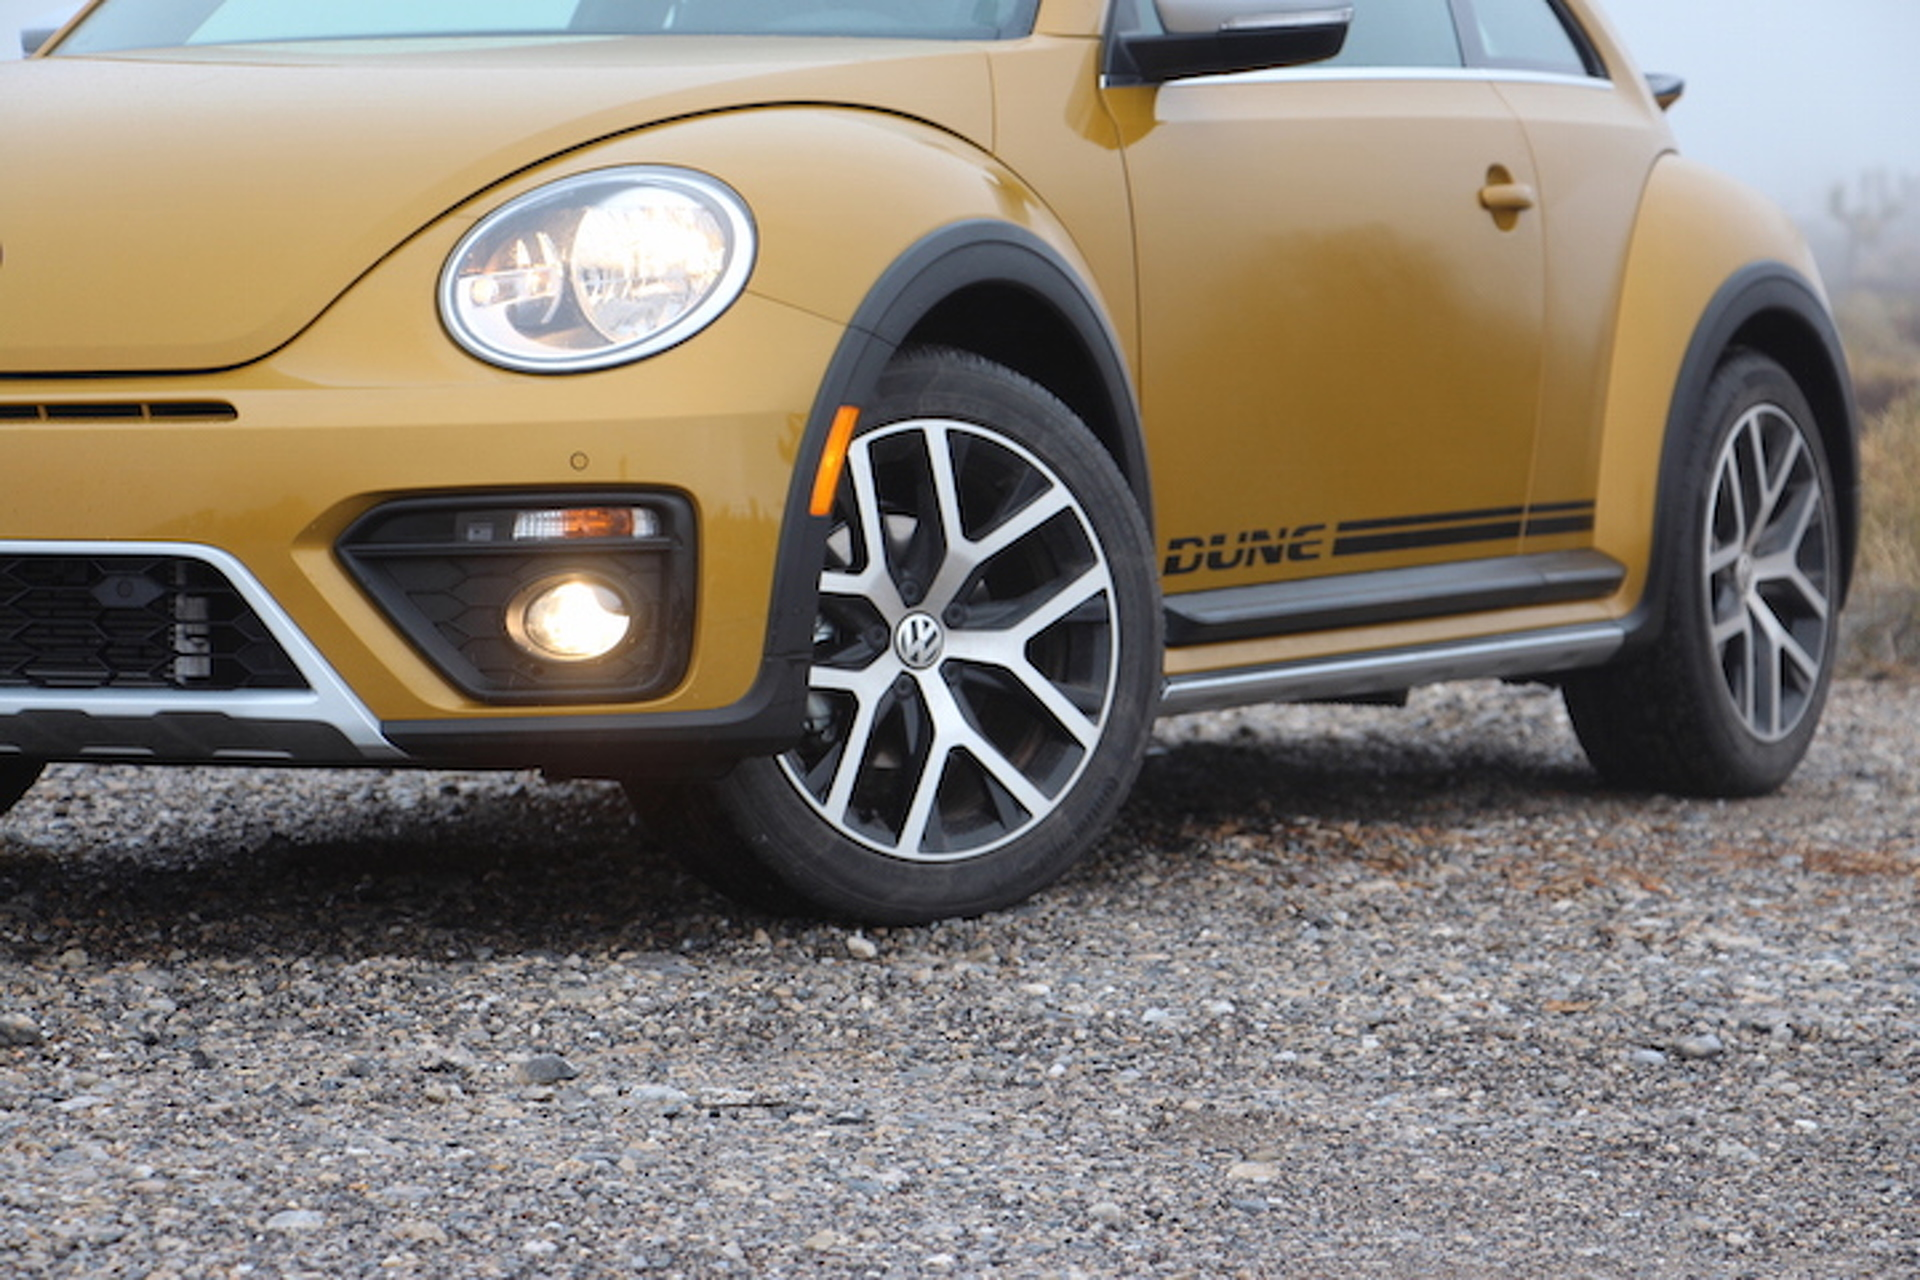 2016 Volkswagen Beetle Dune Deserves At Least a Little Respect: First Drive